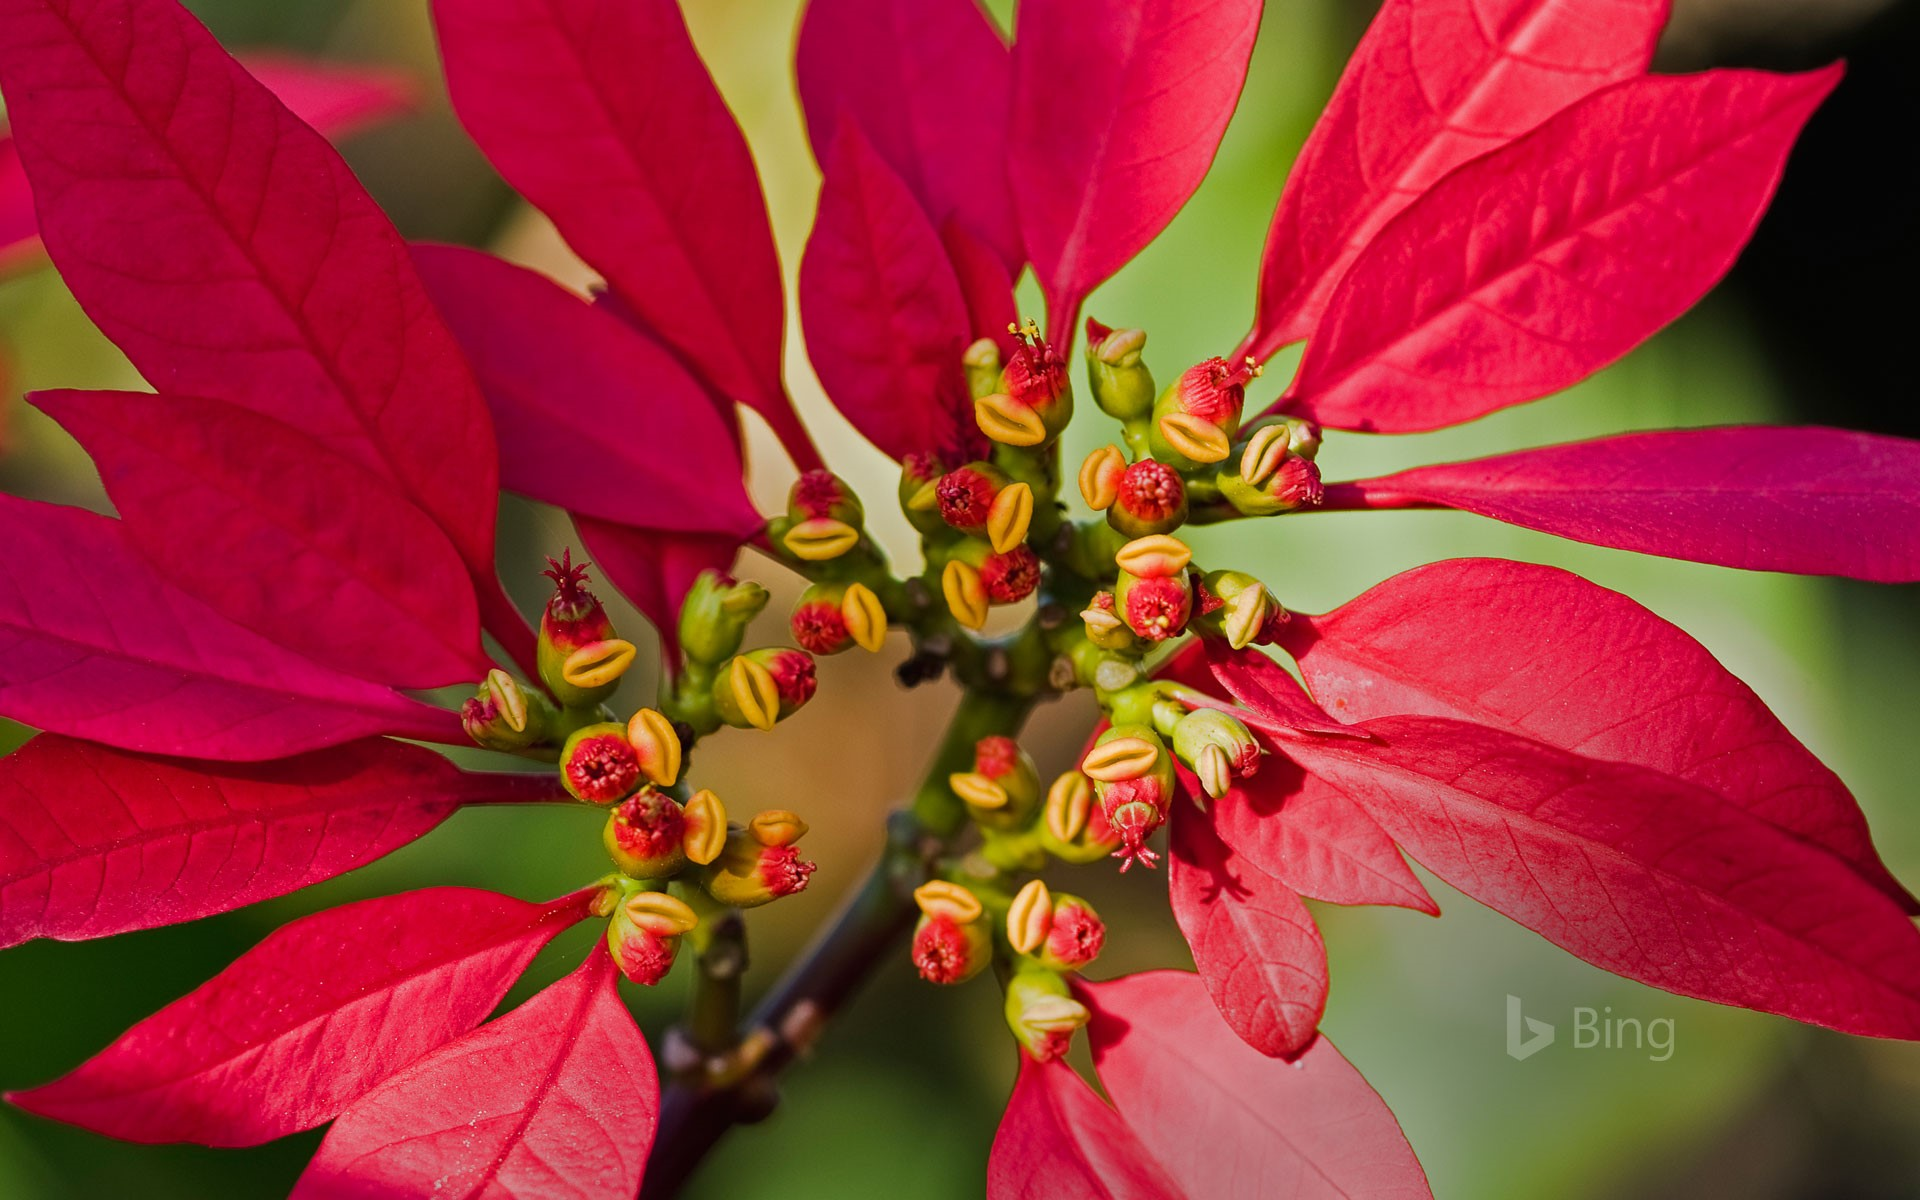 Poinsettia flower buds